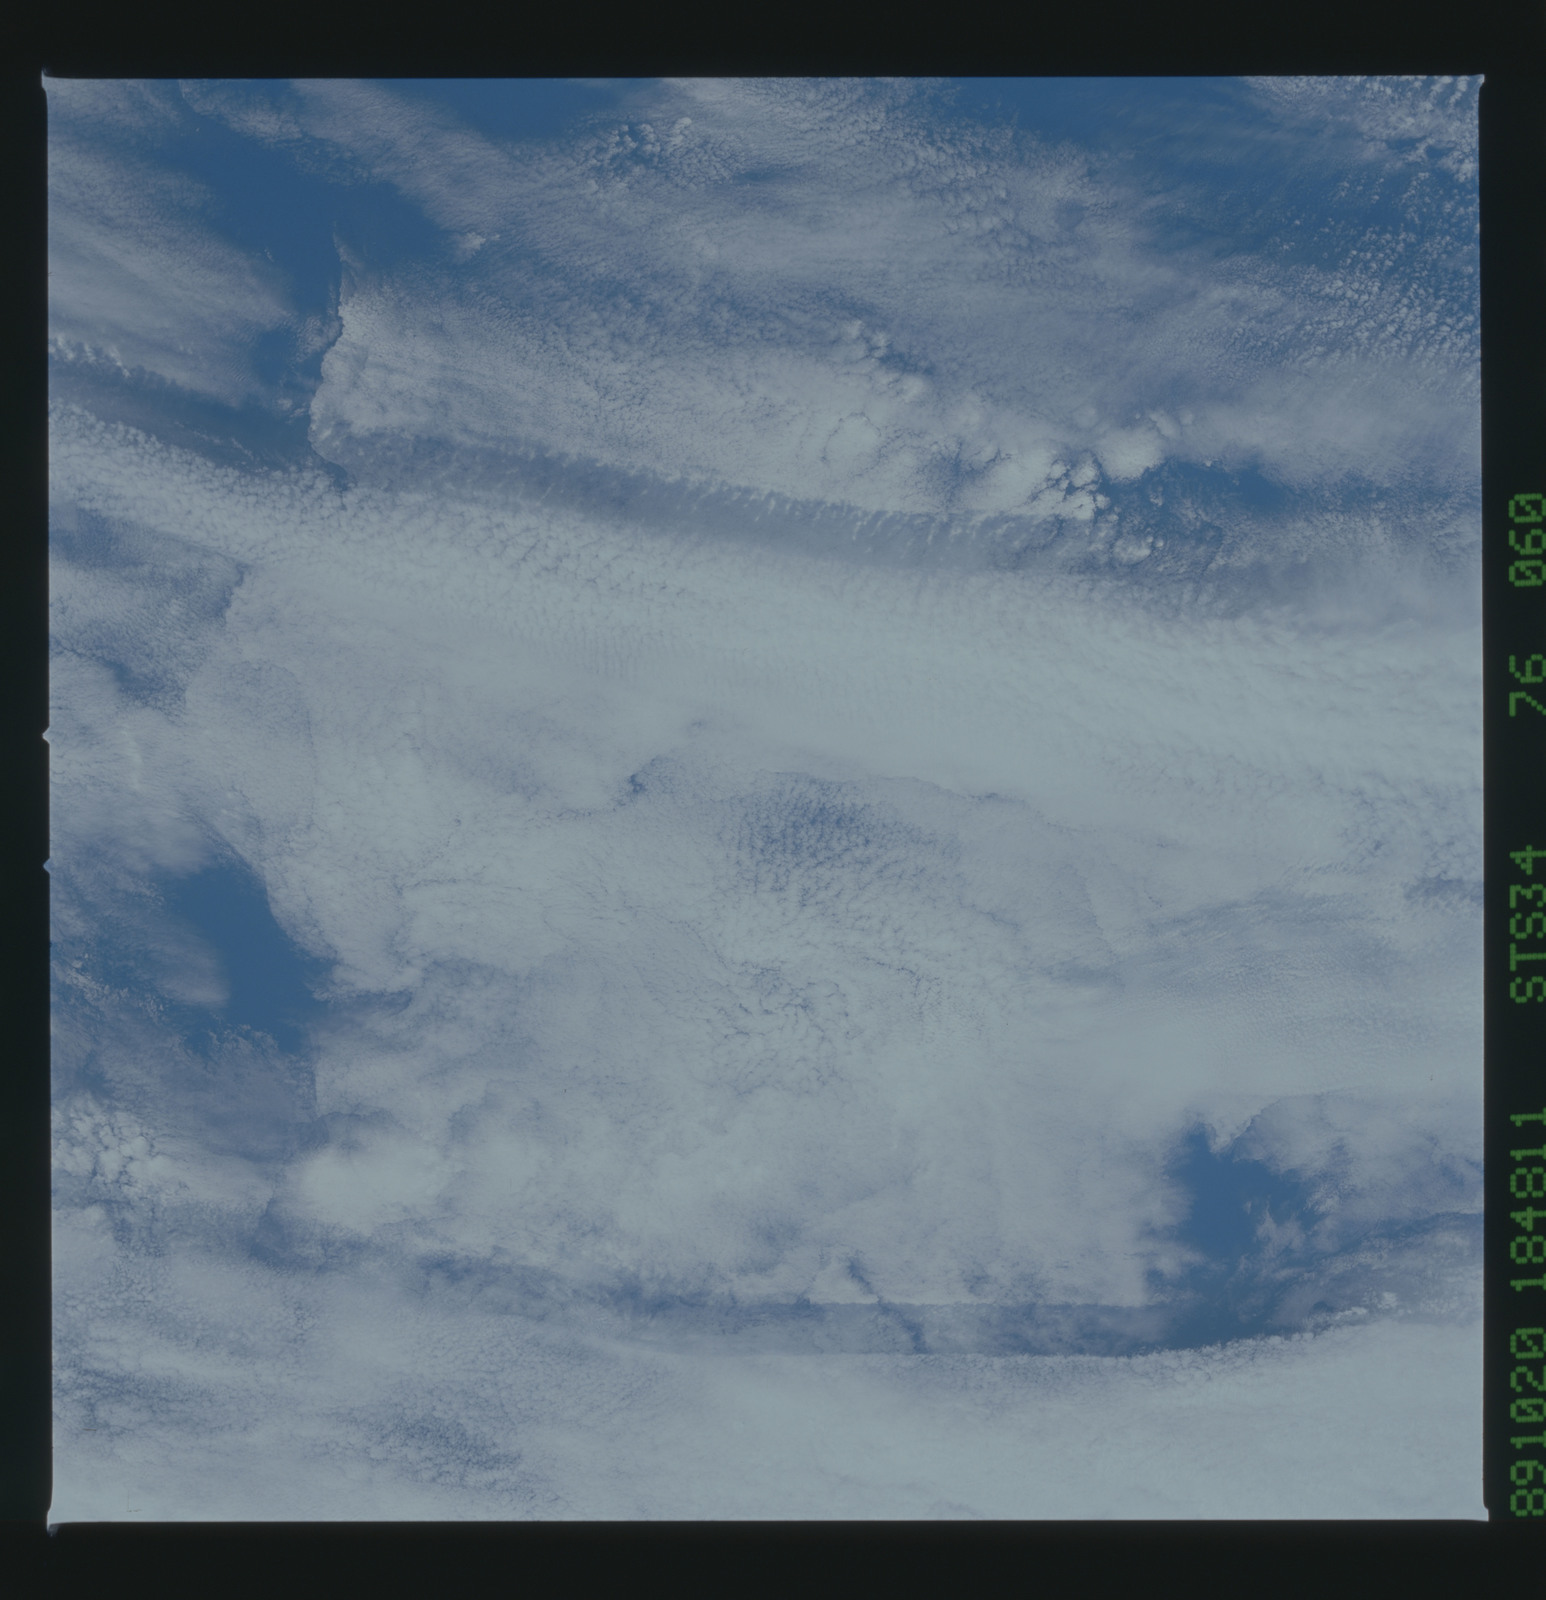 S34-76-060 - STS-034 - STS-34 earth observations